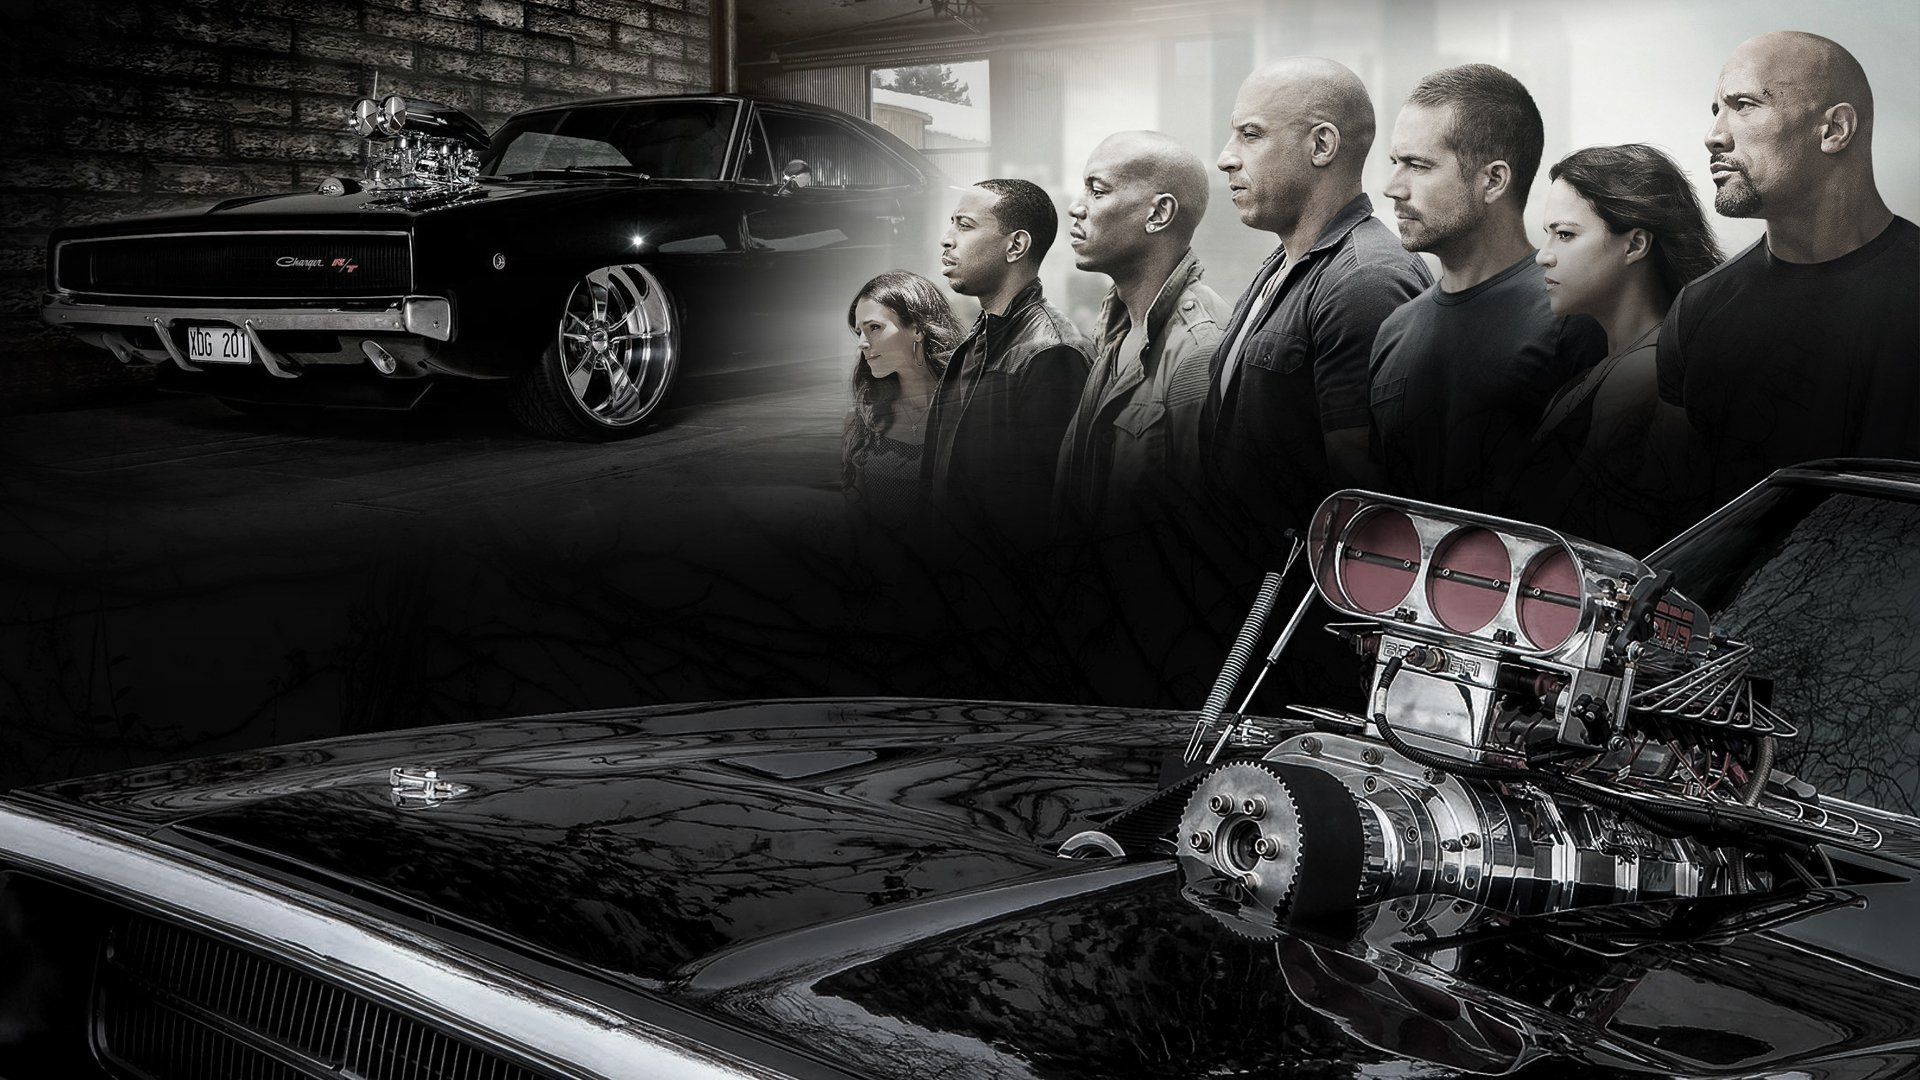 Free Fast And Furious 7 High Quality Wallpaper ID62166 For Full Hd 1080p Computer